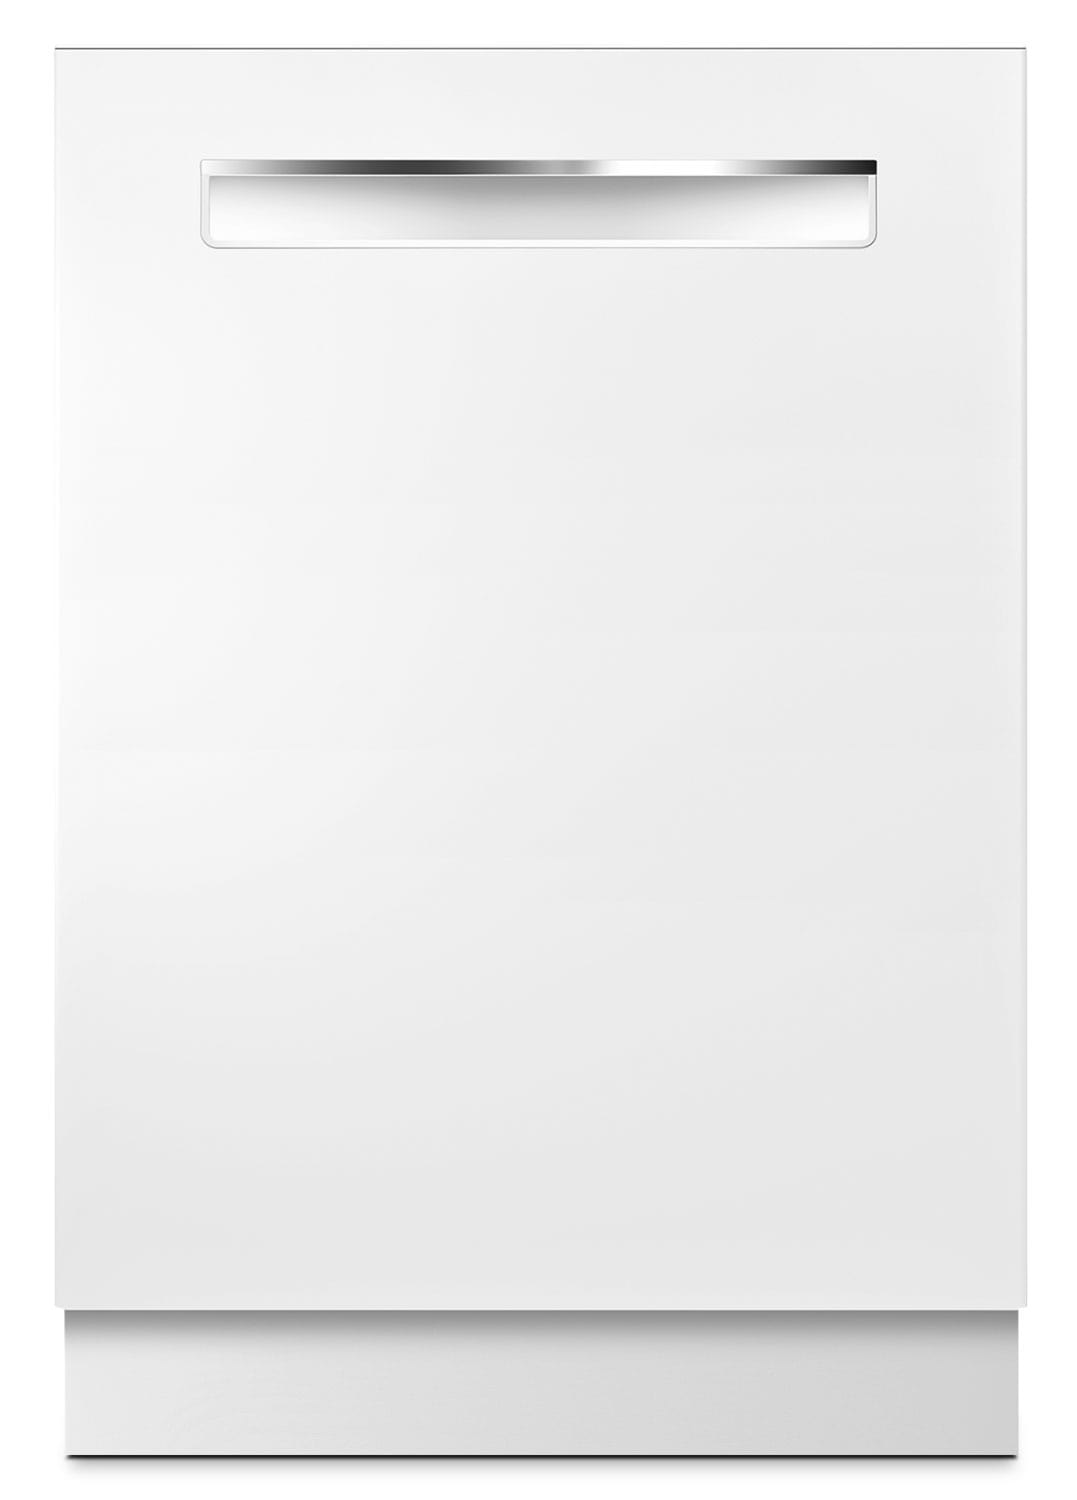 "Bosch 500 Series 24"" Flush-Handle Under-Counter Dishwasher – White"